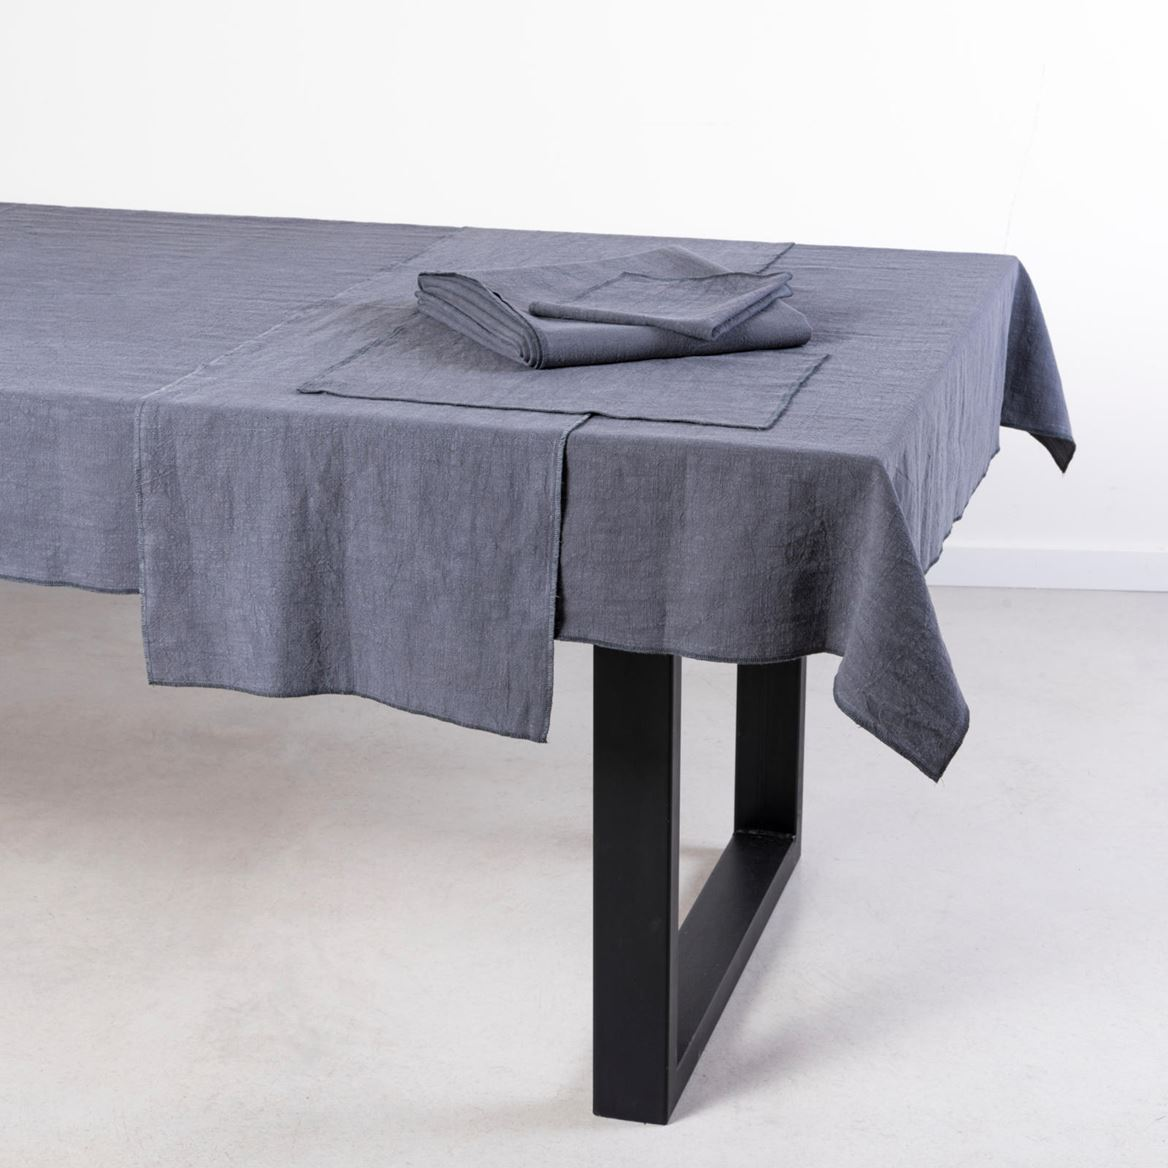 LUXALIN  Mantel gris oscuro An. 135 x L 240 cm_luxalin--mantel-gris-oscuro-an--135-x-l-240-cm